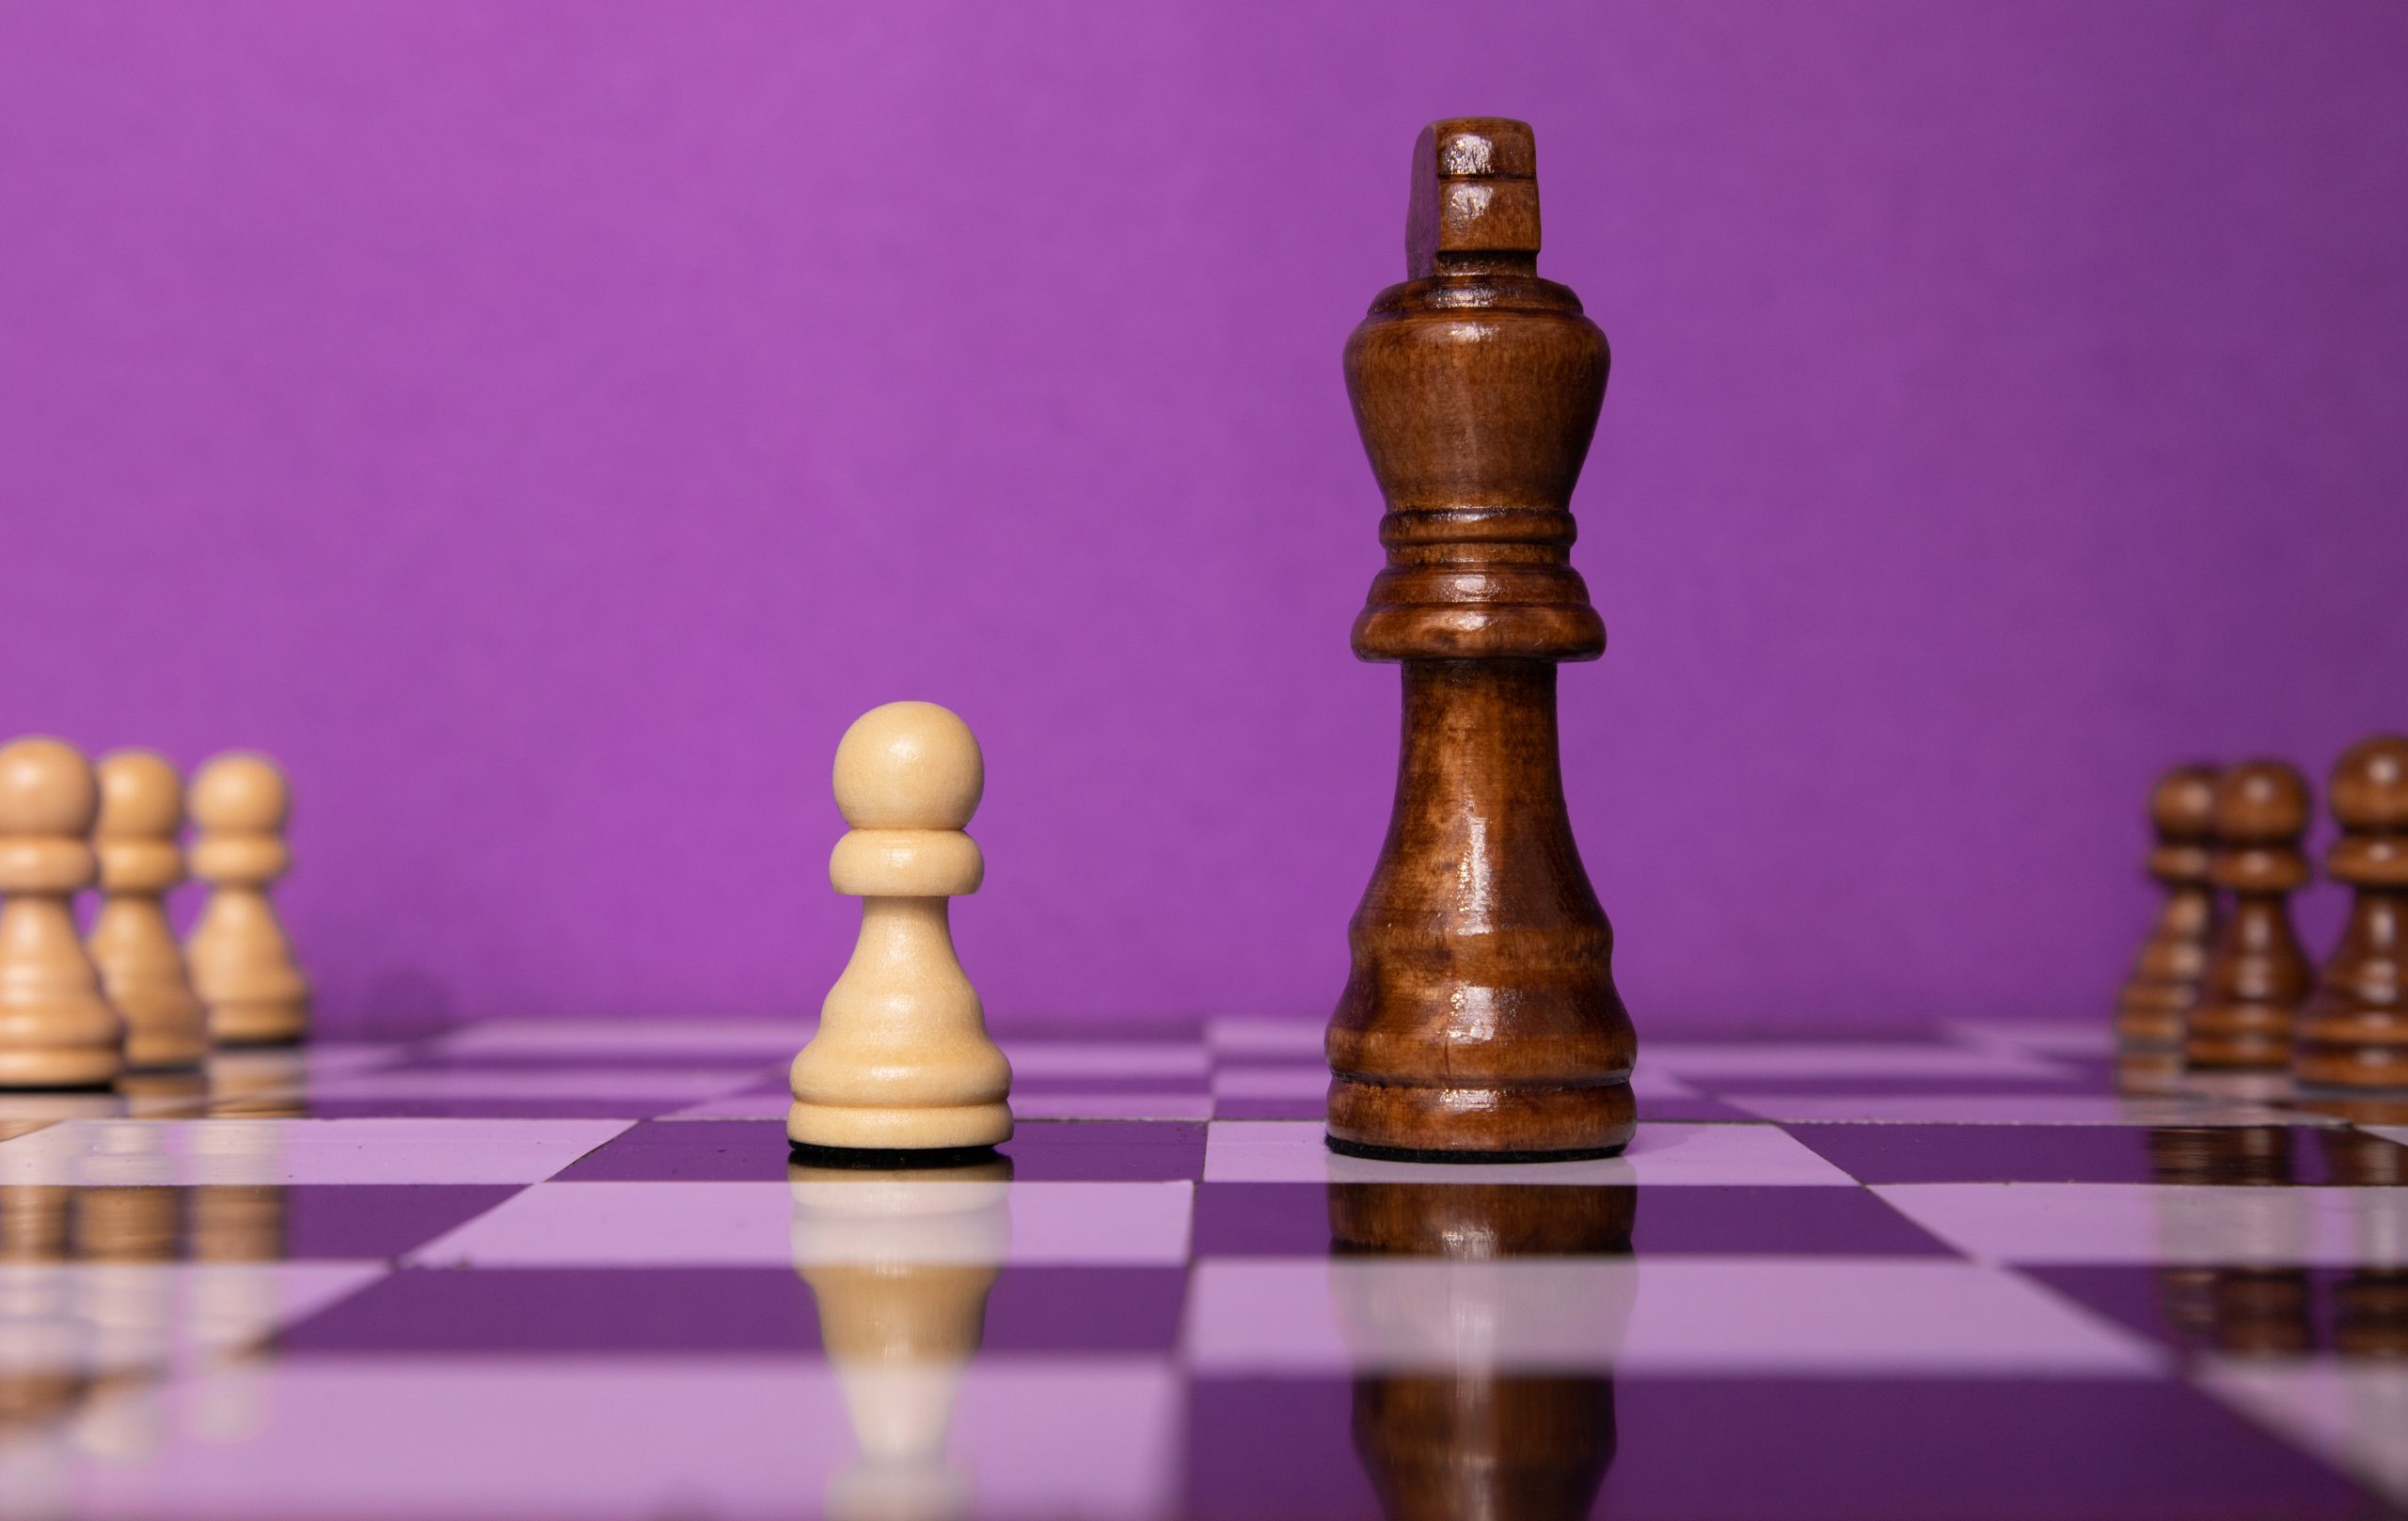 King and pawn opposite